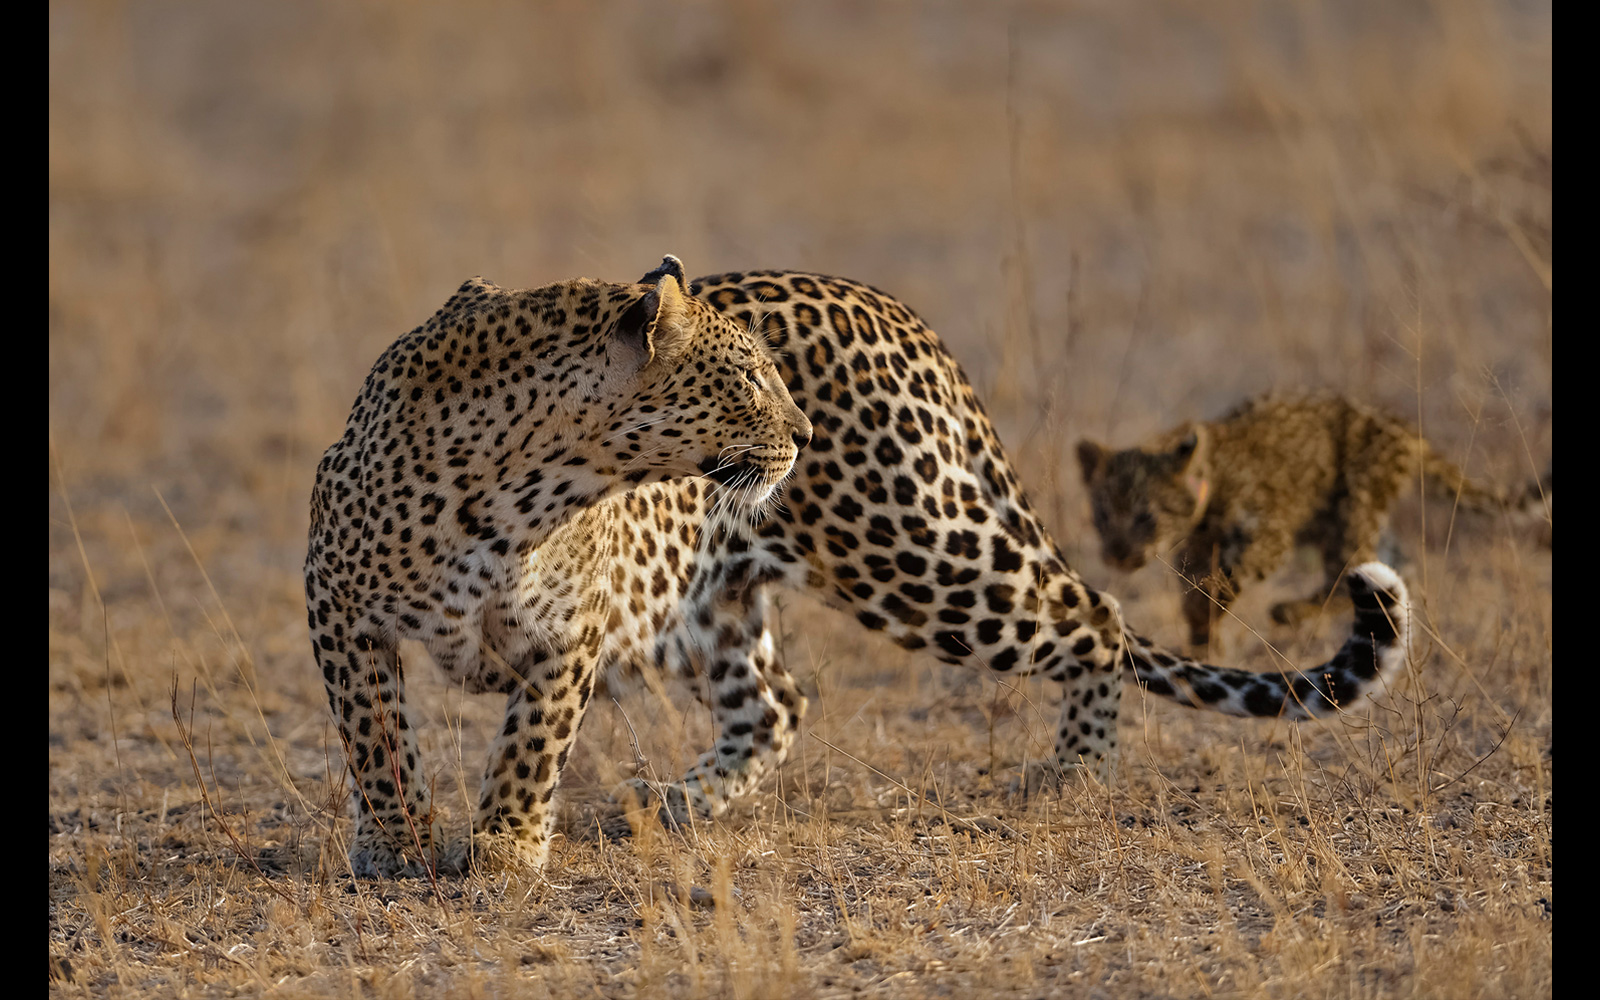 An alert leopard mom and cub crossing the open plains in Londolozi Private Game Reserve, Greater Kruger National Park, South Africa © Willem Kruger